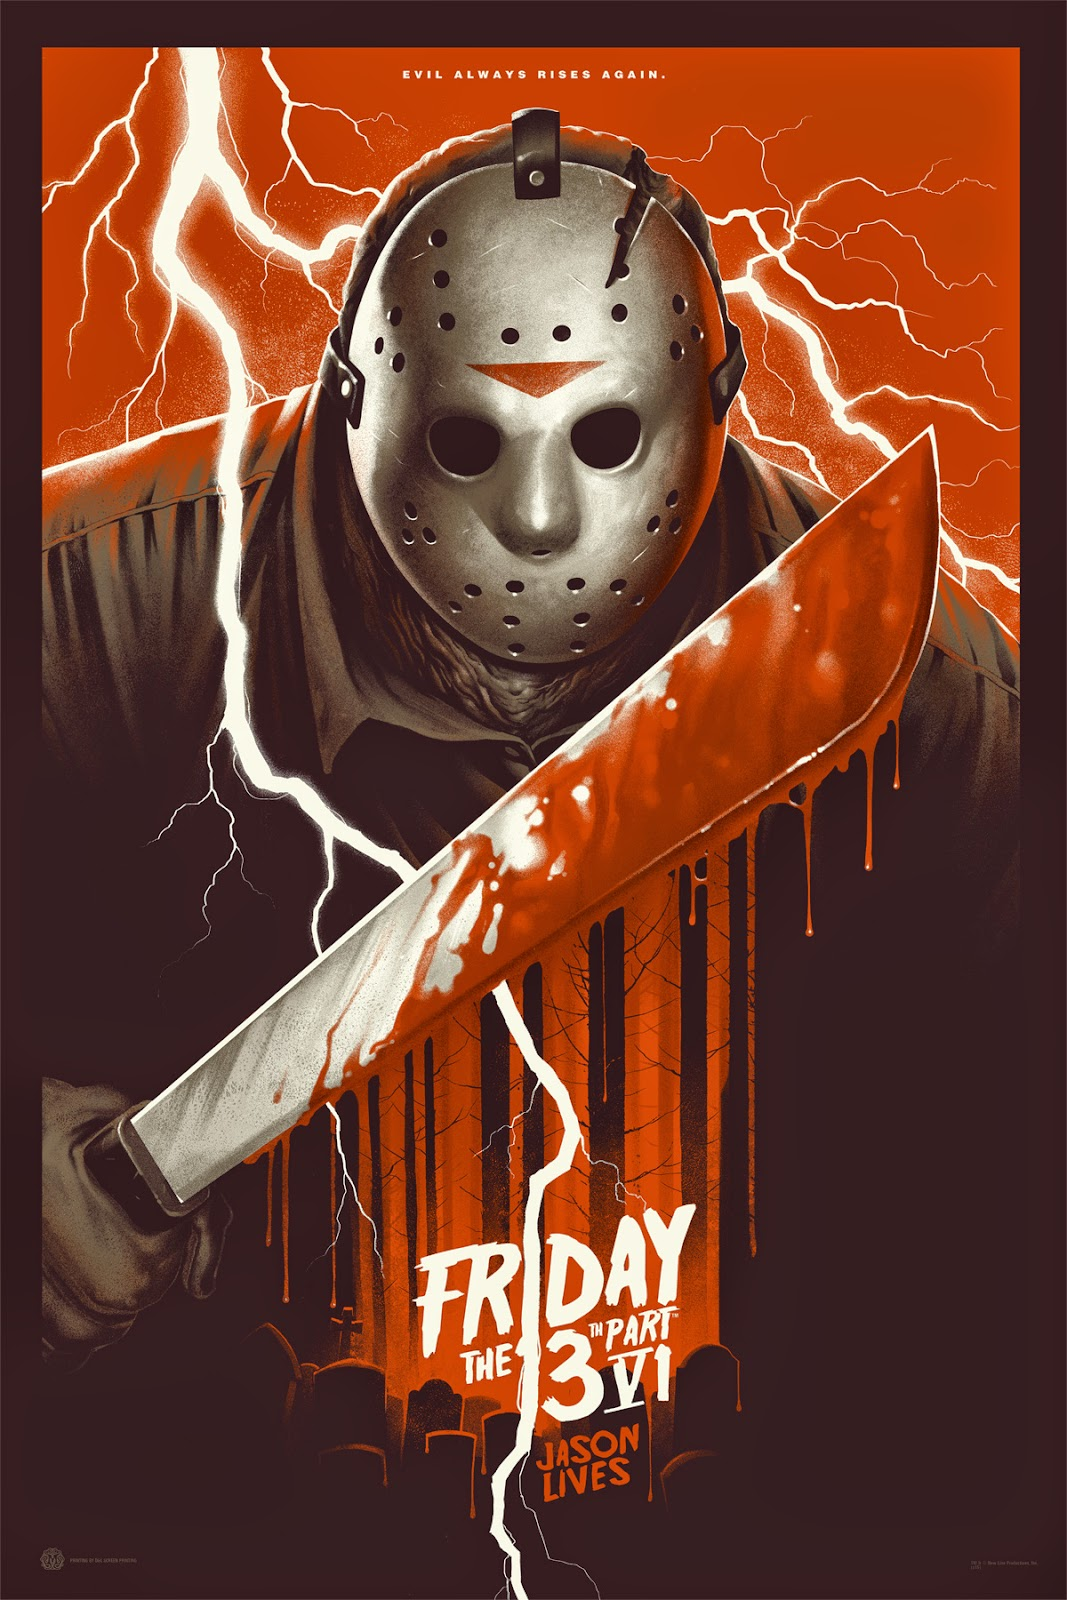 Inside The Rock Poster Frame Blog Friday The 13th Part Vi